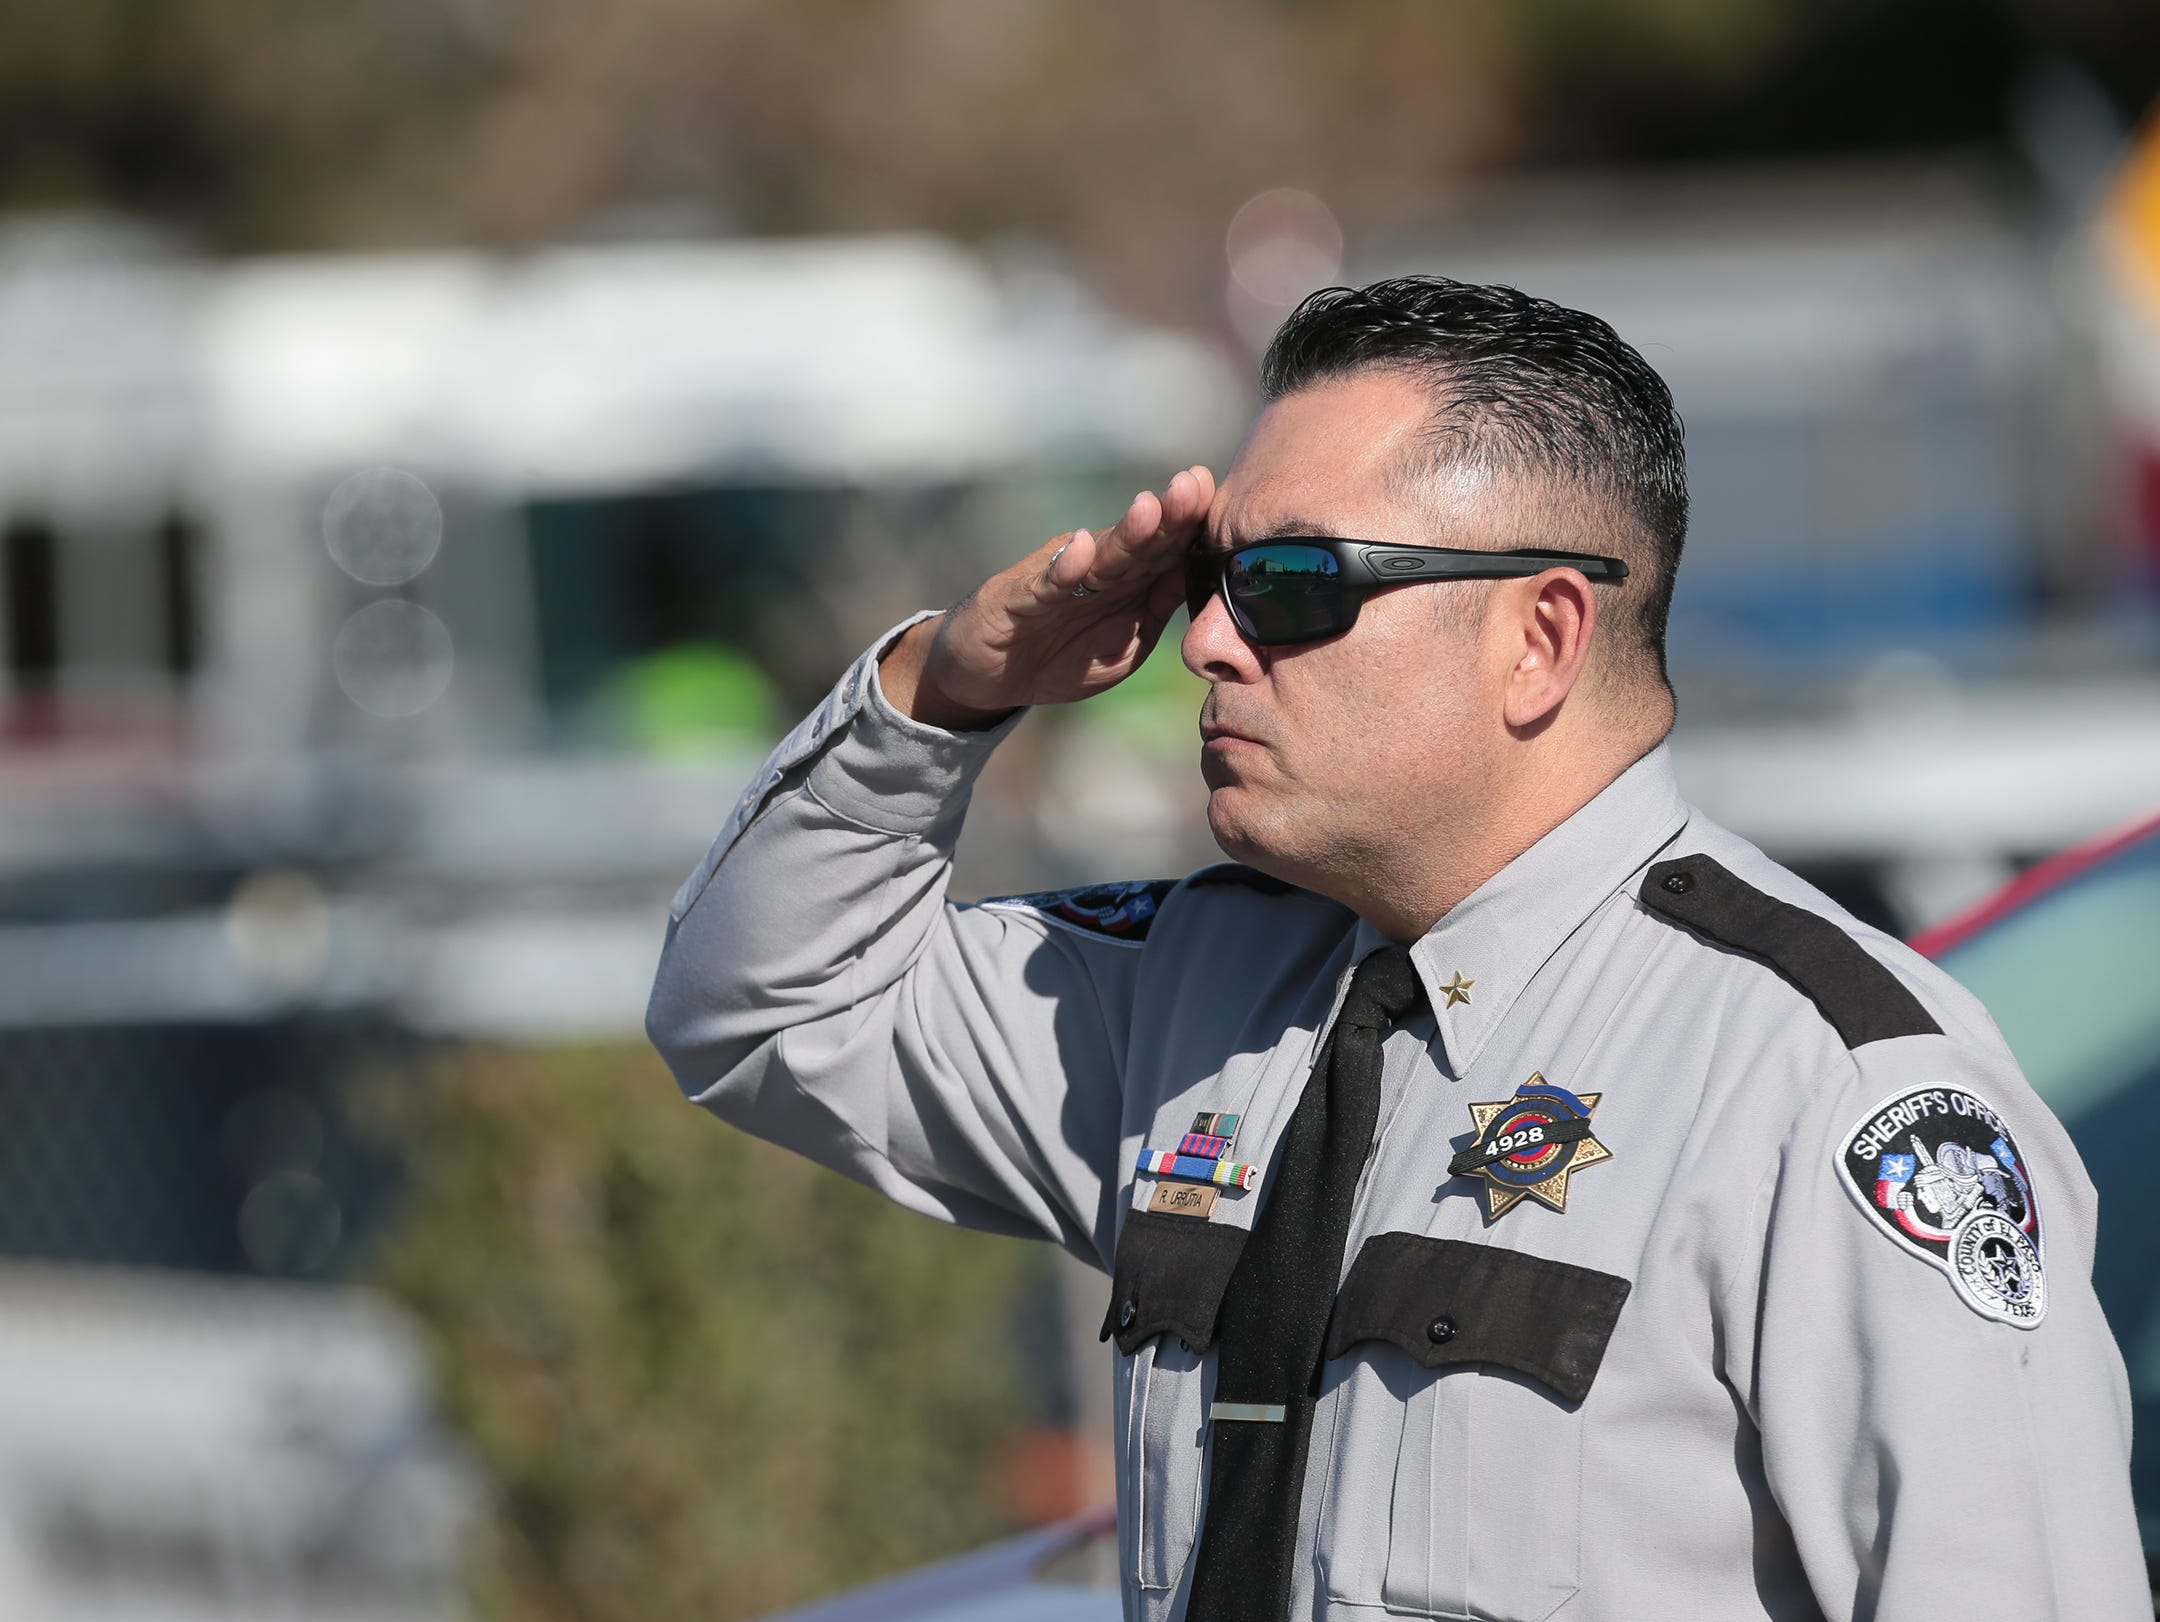 Funeral services were held Friday for El Paso County Sheriff's Office Deputy Peter Herrera who was shot and killed.